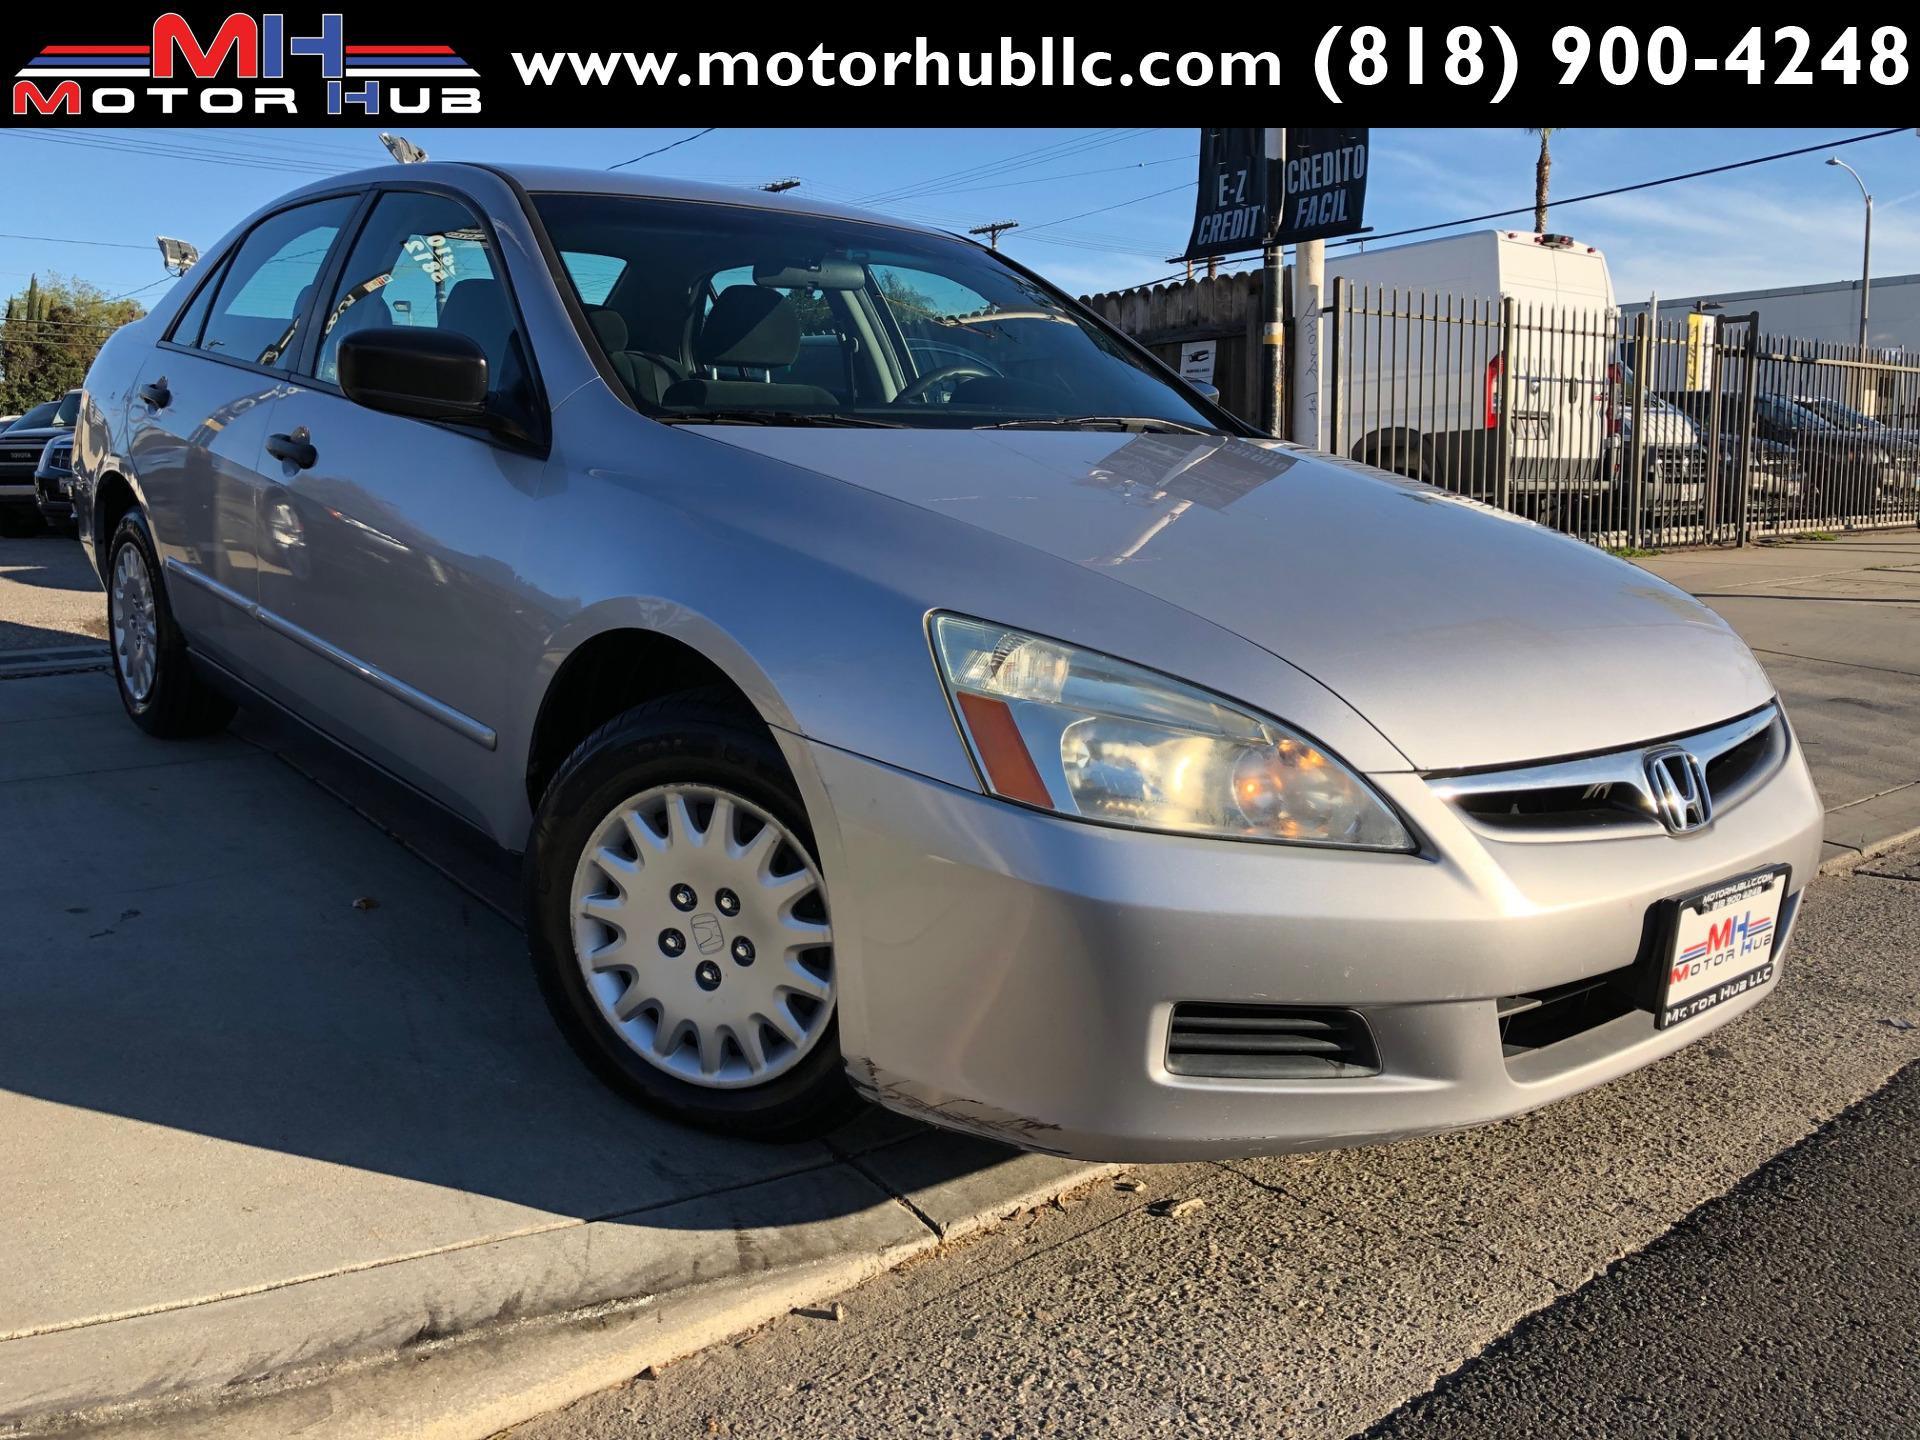 Garage Honda Sion 2006 Honda Accord Value Package Stock 156075 For Sale Near Van